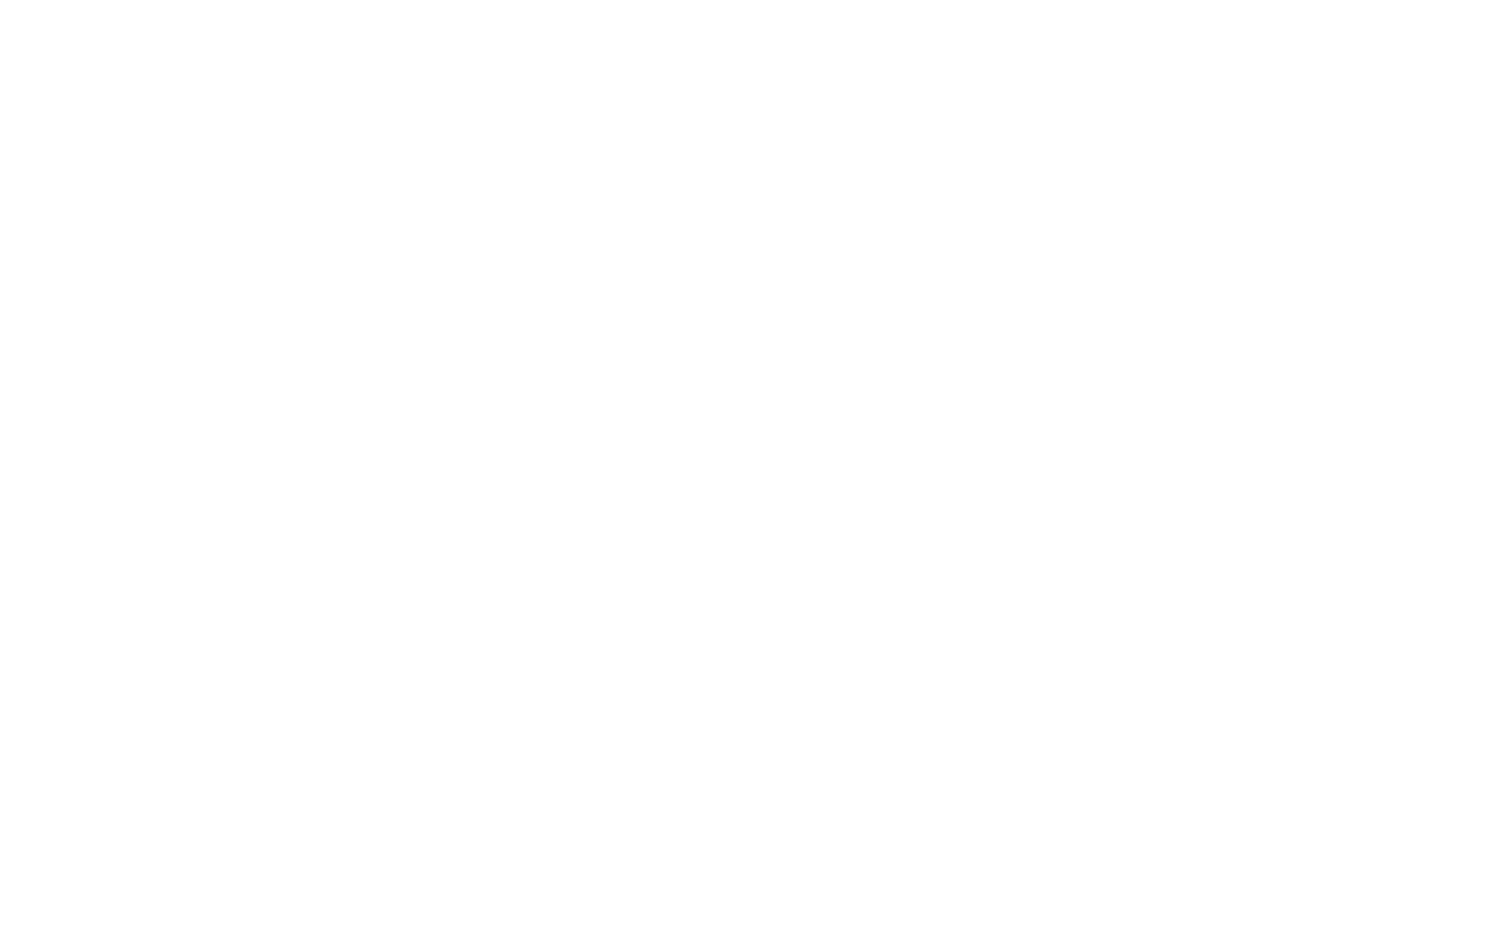 J&S Kitchen and Bath Designs